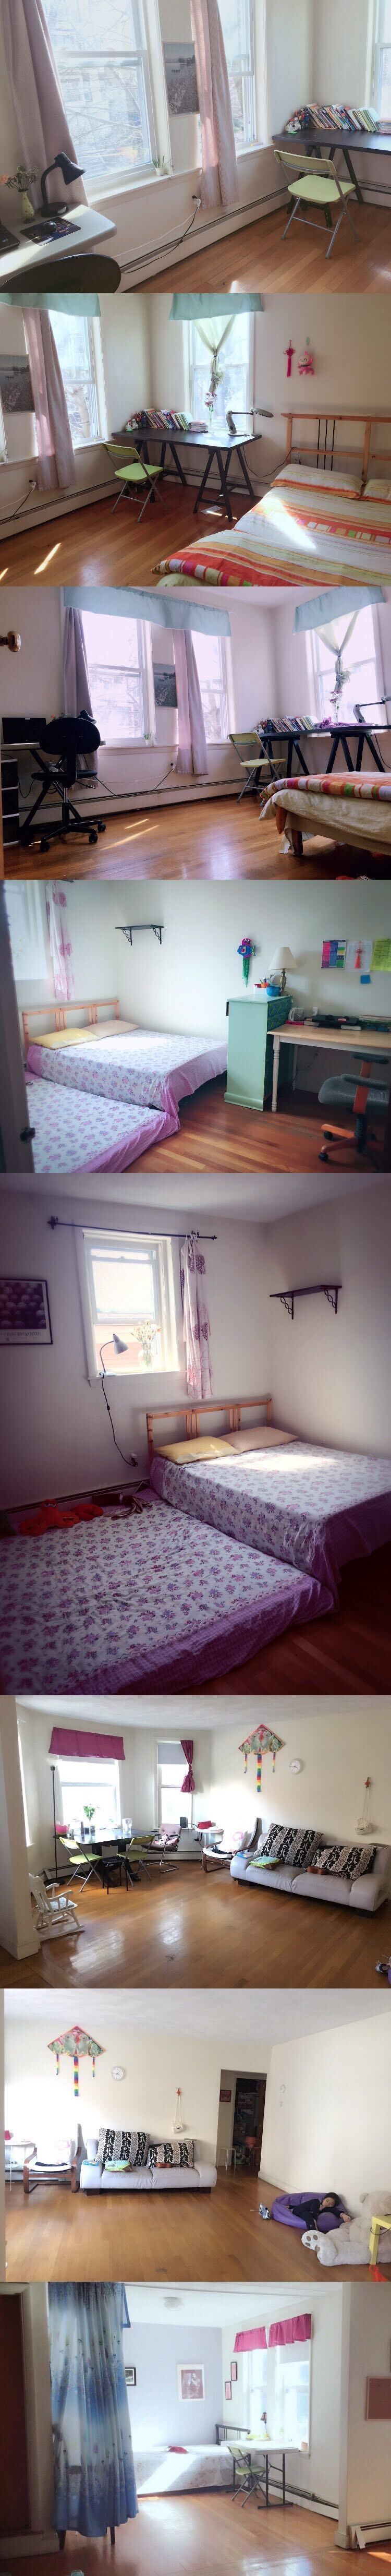 2B1B shared one bedroom